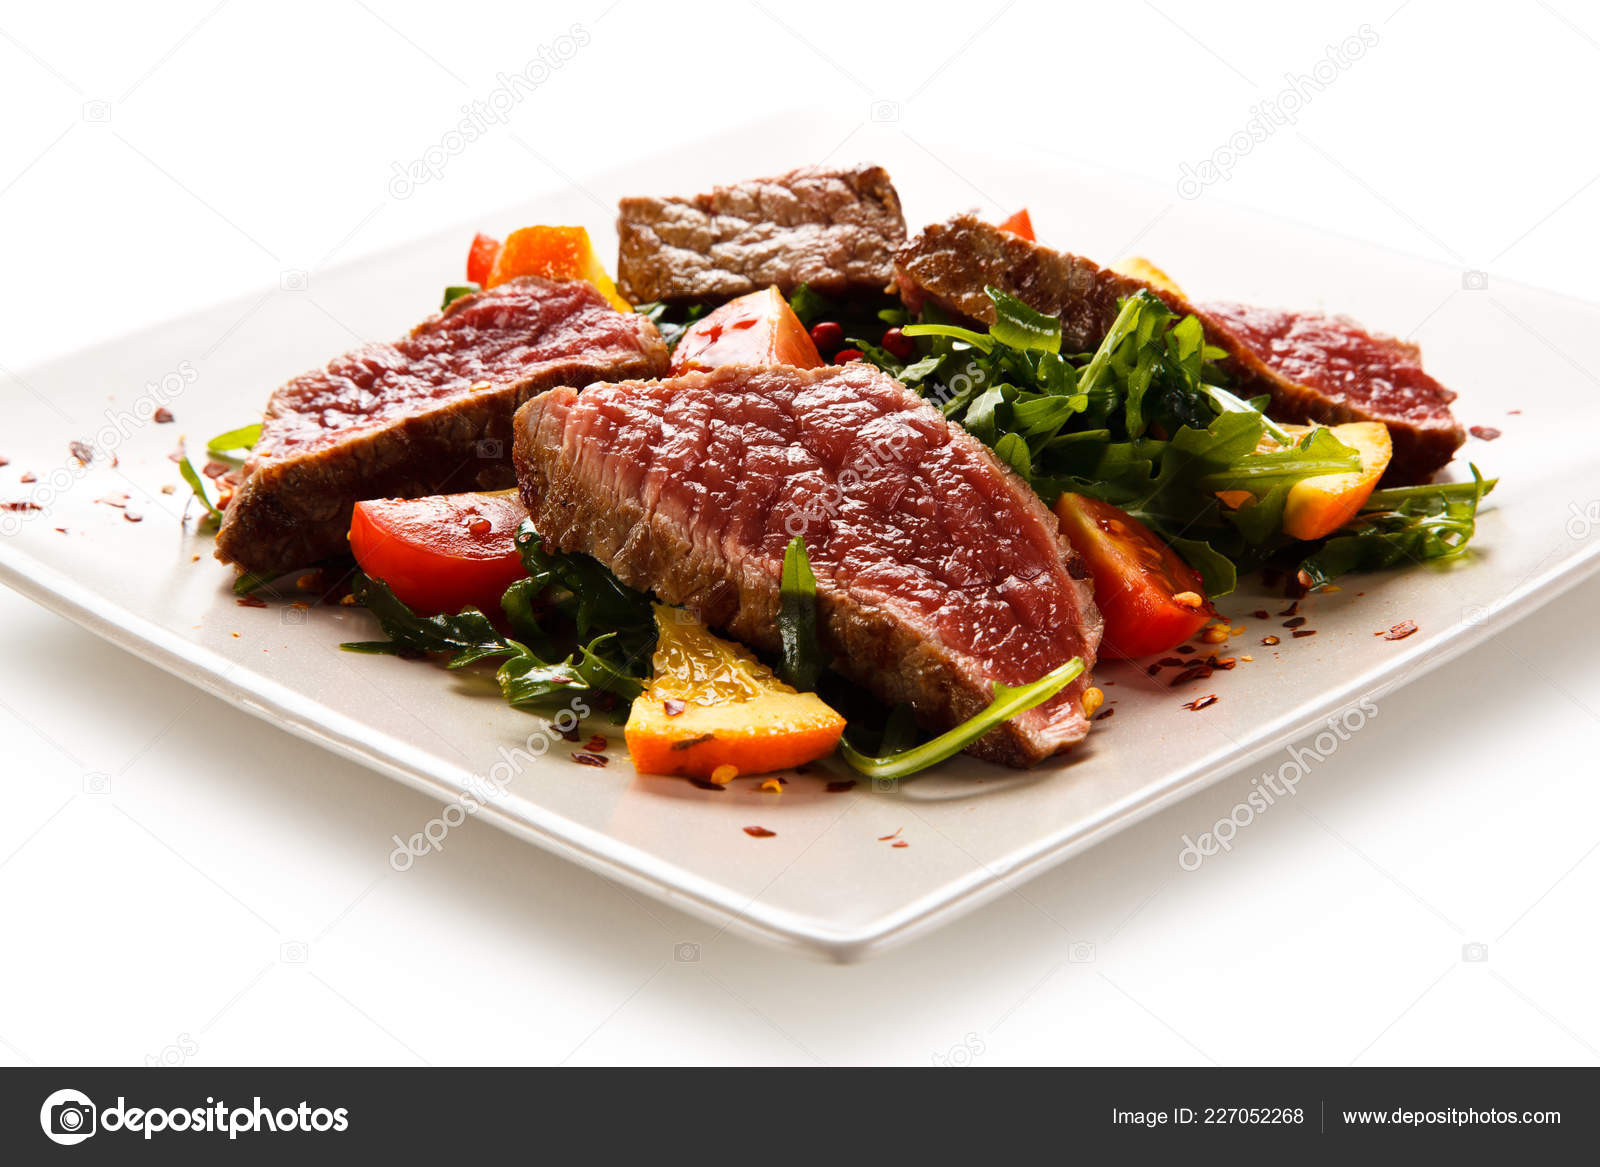 Sliced Beef Steak Salad White Plate Stock Photo Image By C Gbh007 227052268